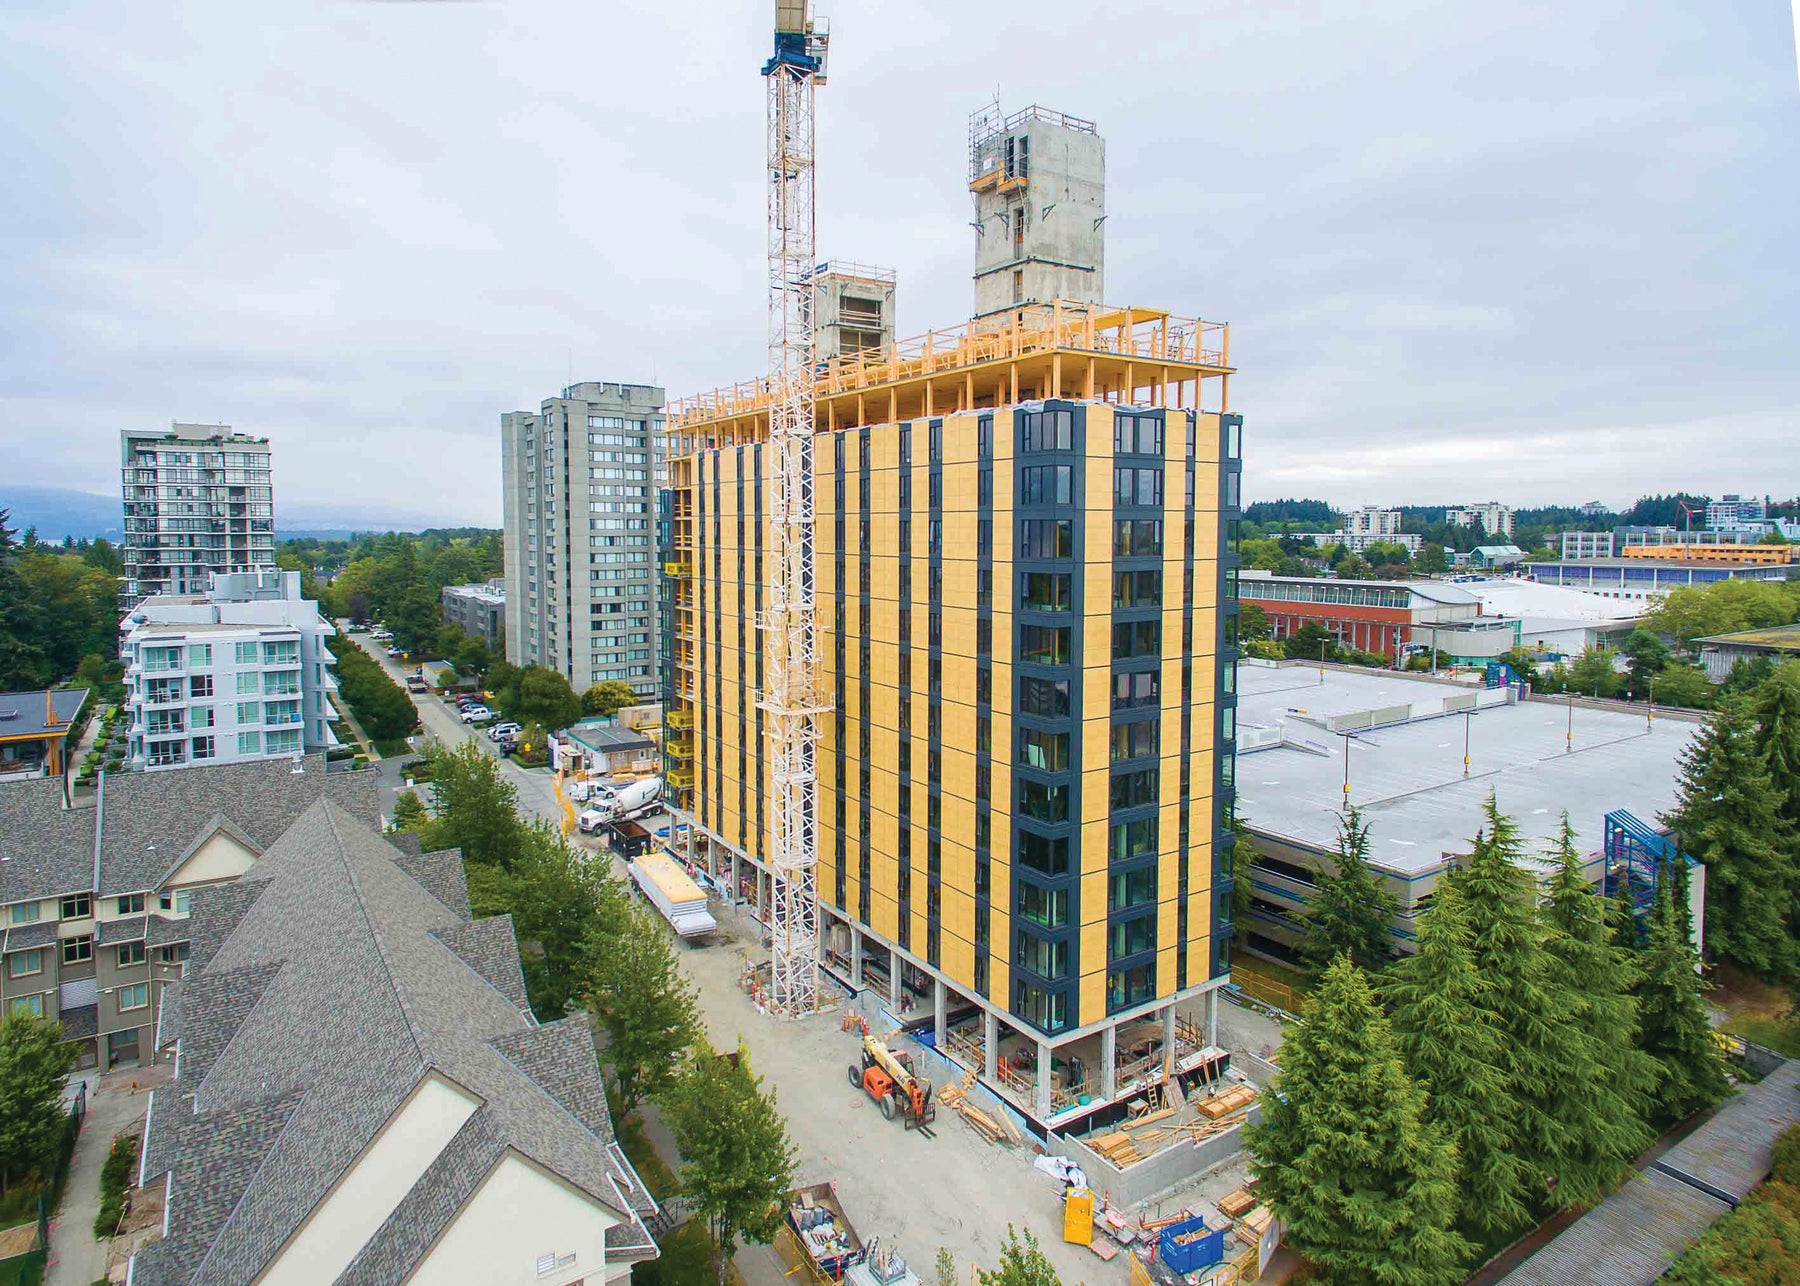 UBC'S BROCK COMMONS: STUDENT RESIDENCE